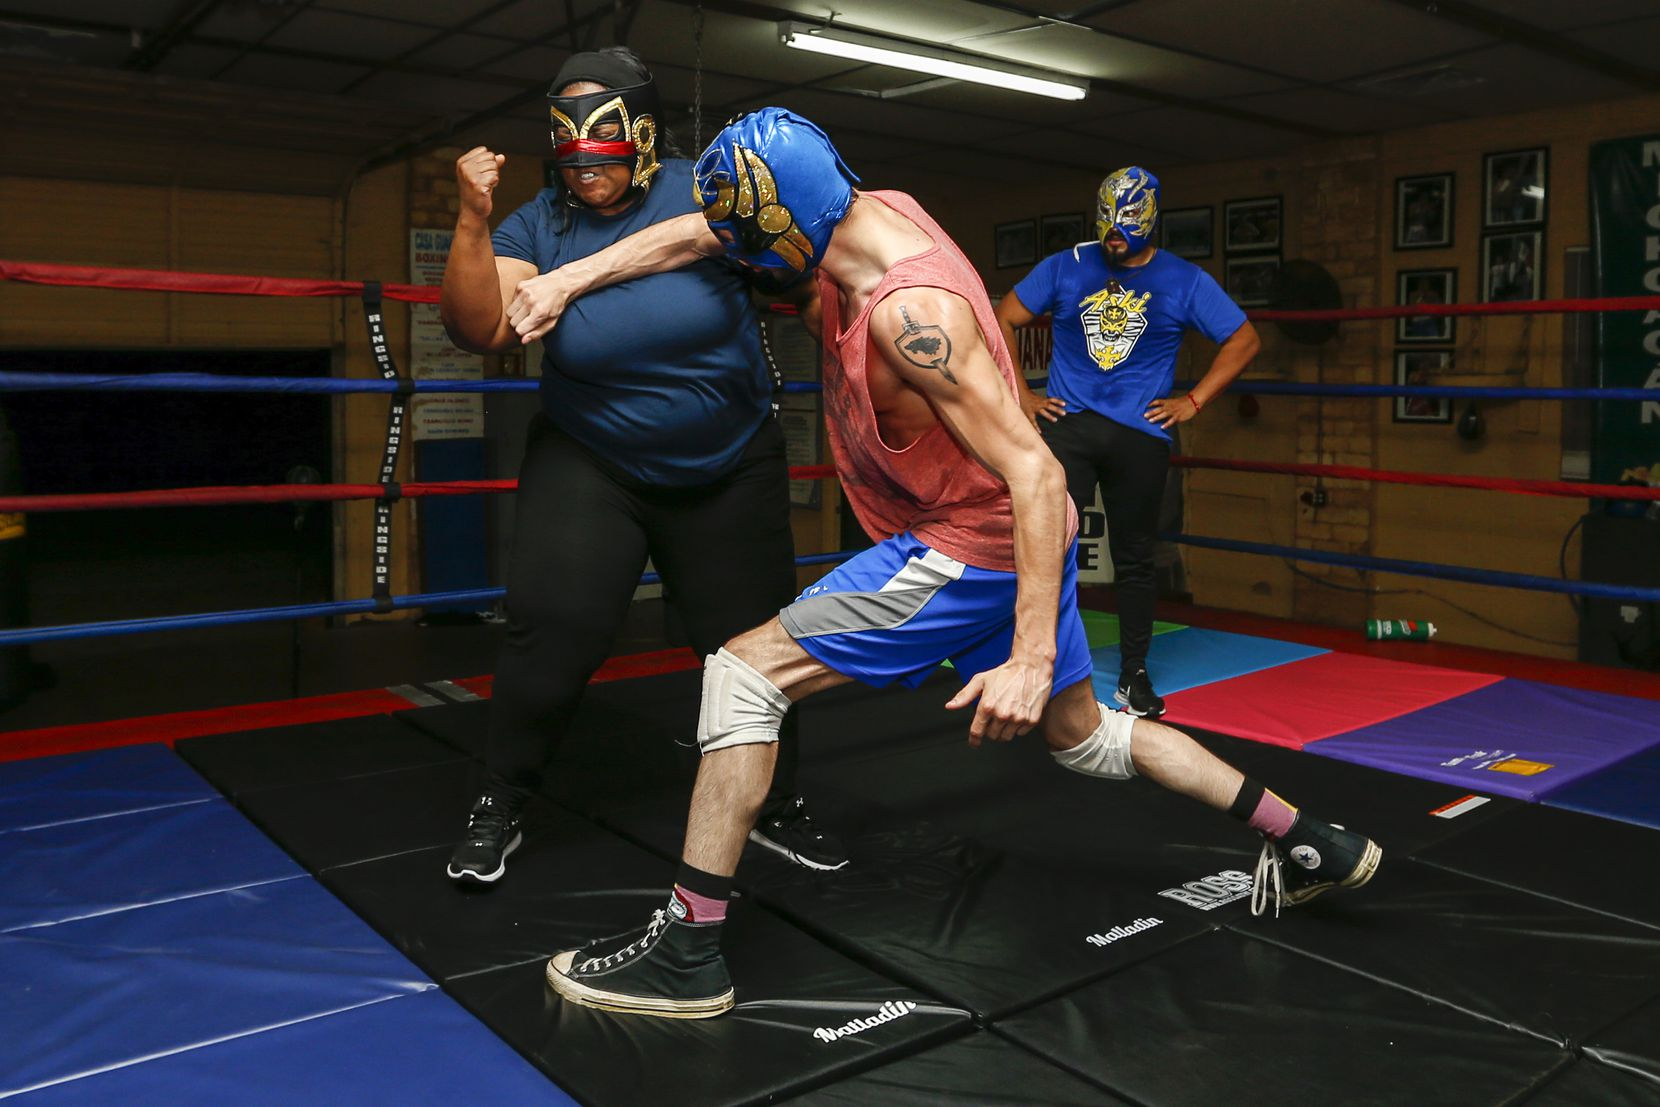 """Dylan Cantu as Huitzi, center, throws a strike towards Tiffany Lang as Coyol as wrestling coordinator Aski watches during a rehearsal of """"Lucha Teotl"""" at Casa Guanajuato."""